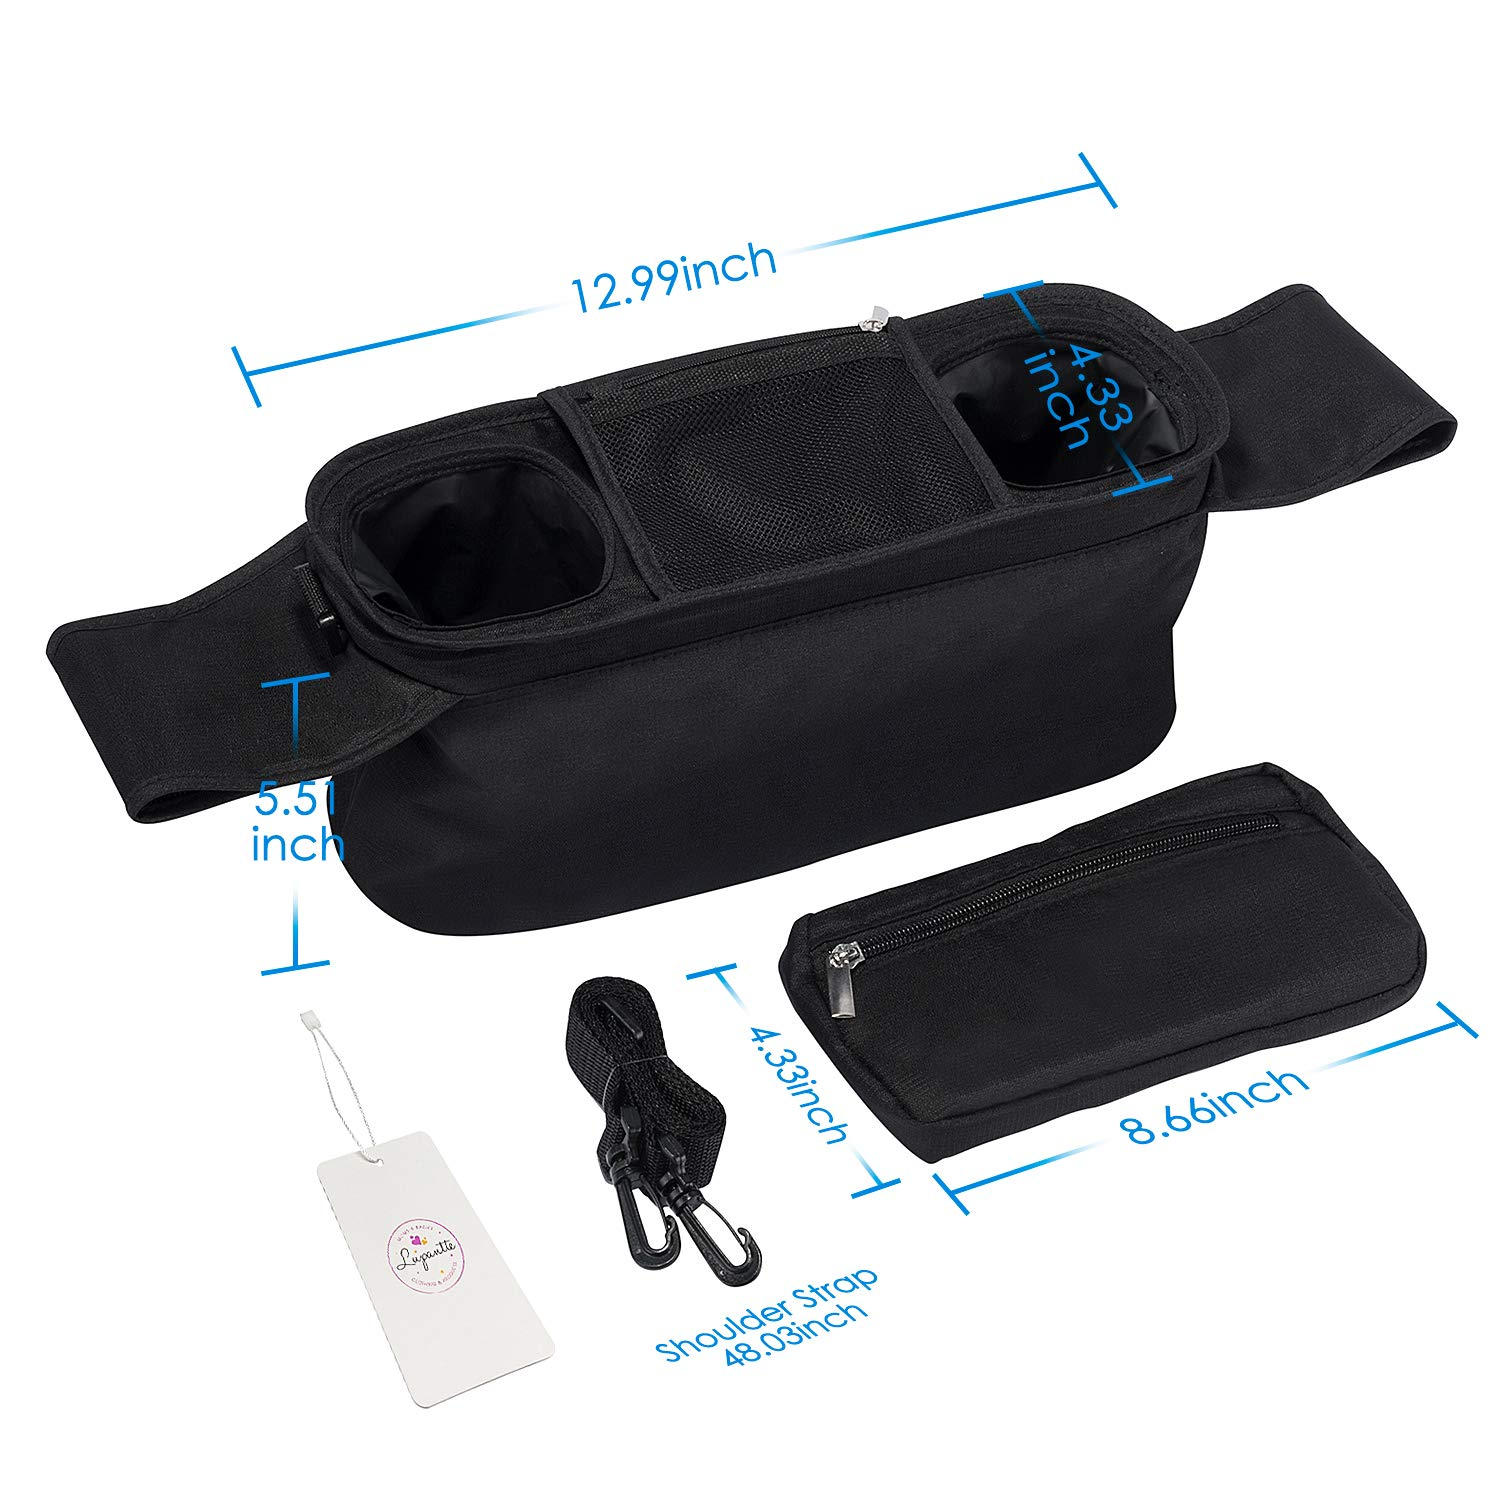 Universal Stroller Organizer with 2 Insulated Cup Holders, Lupantte Stroller Accessories, for Carrying Diaper, iPhone, Toys & Snacks, Fits Britax, Uppababy, Baby Jogger, Bugaboo and BOB Stroller. by Lupantte (Image #7)